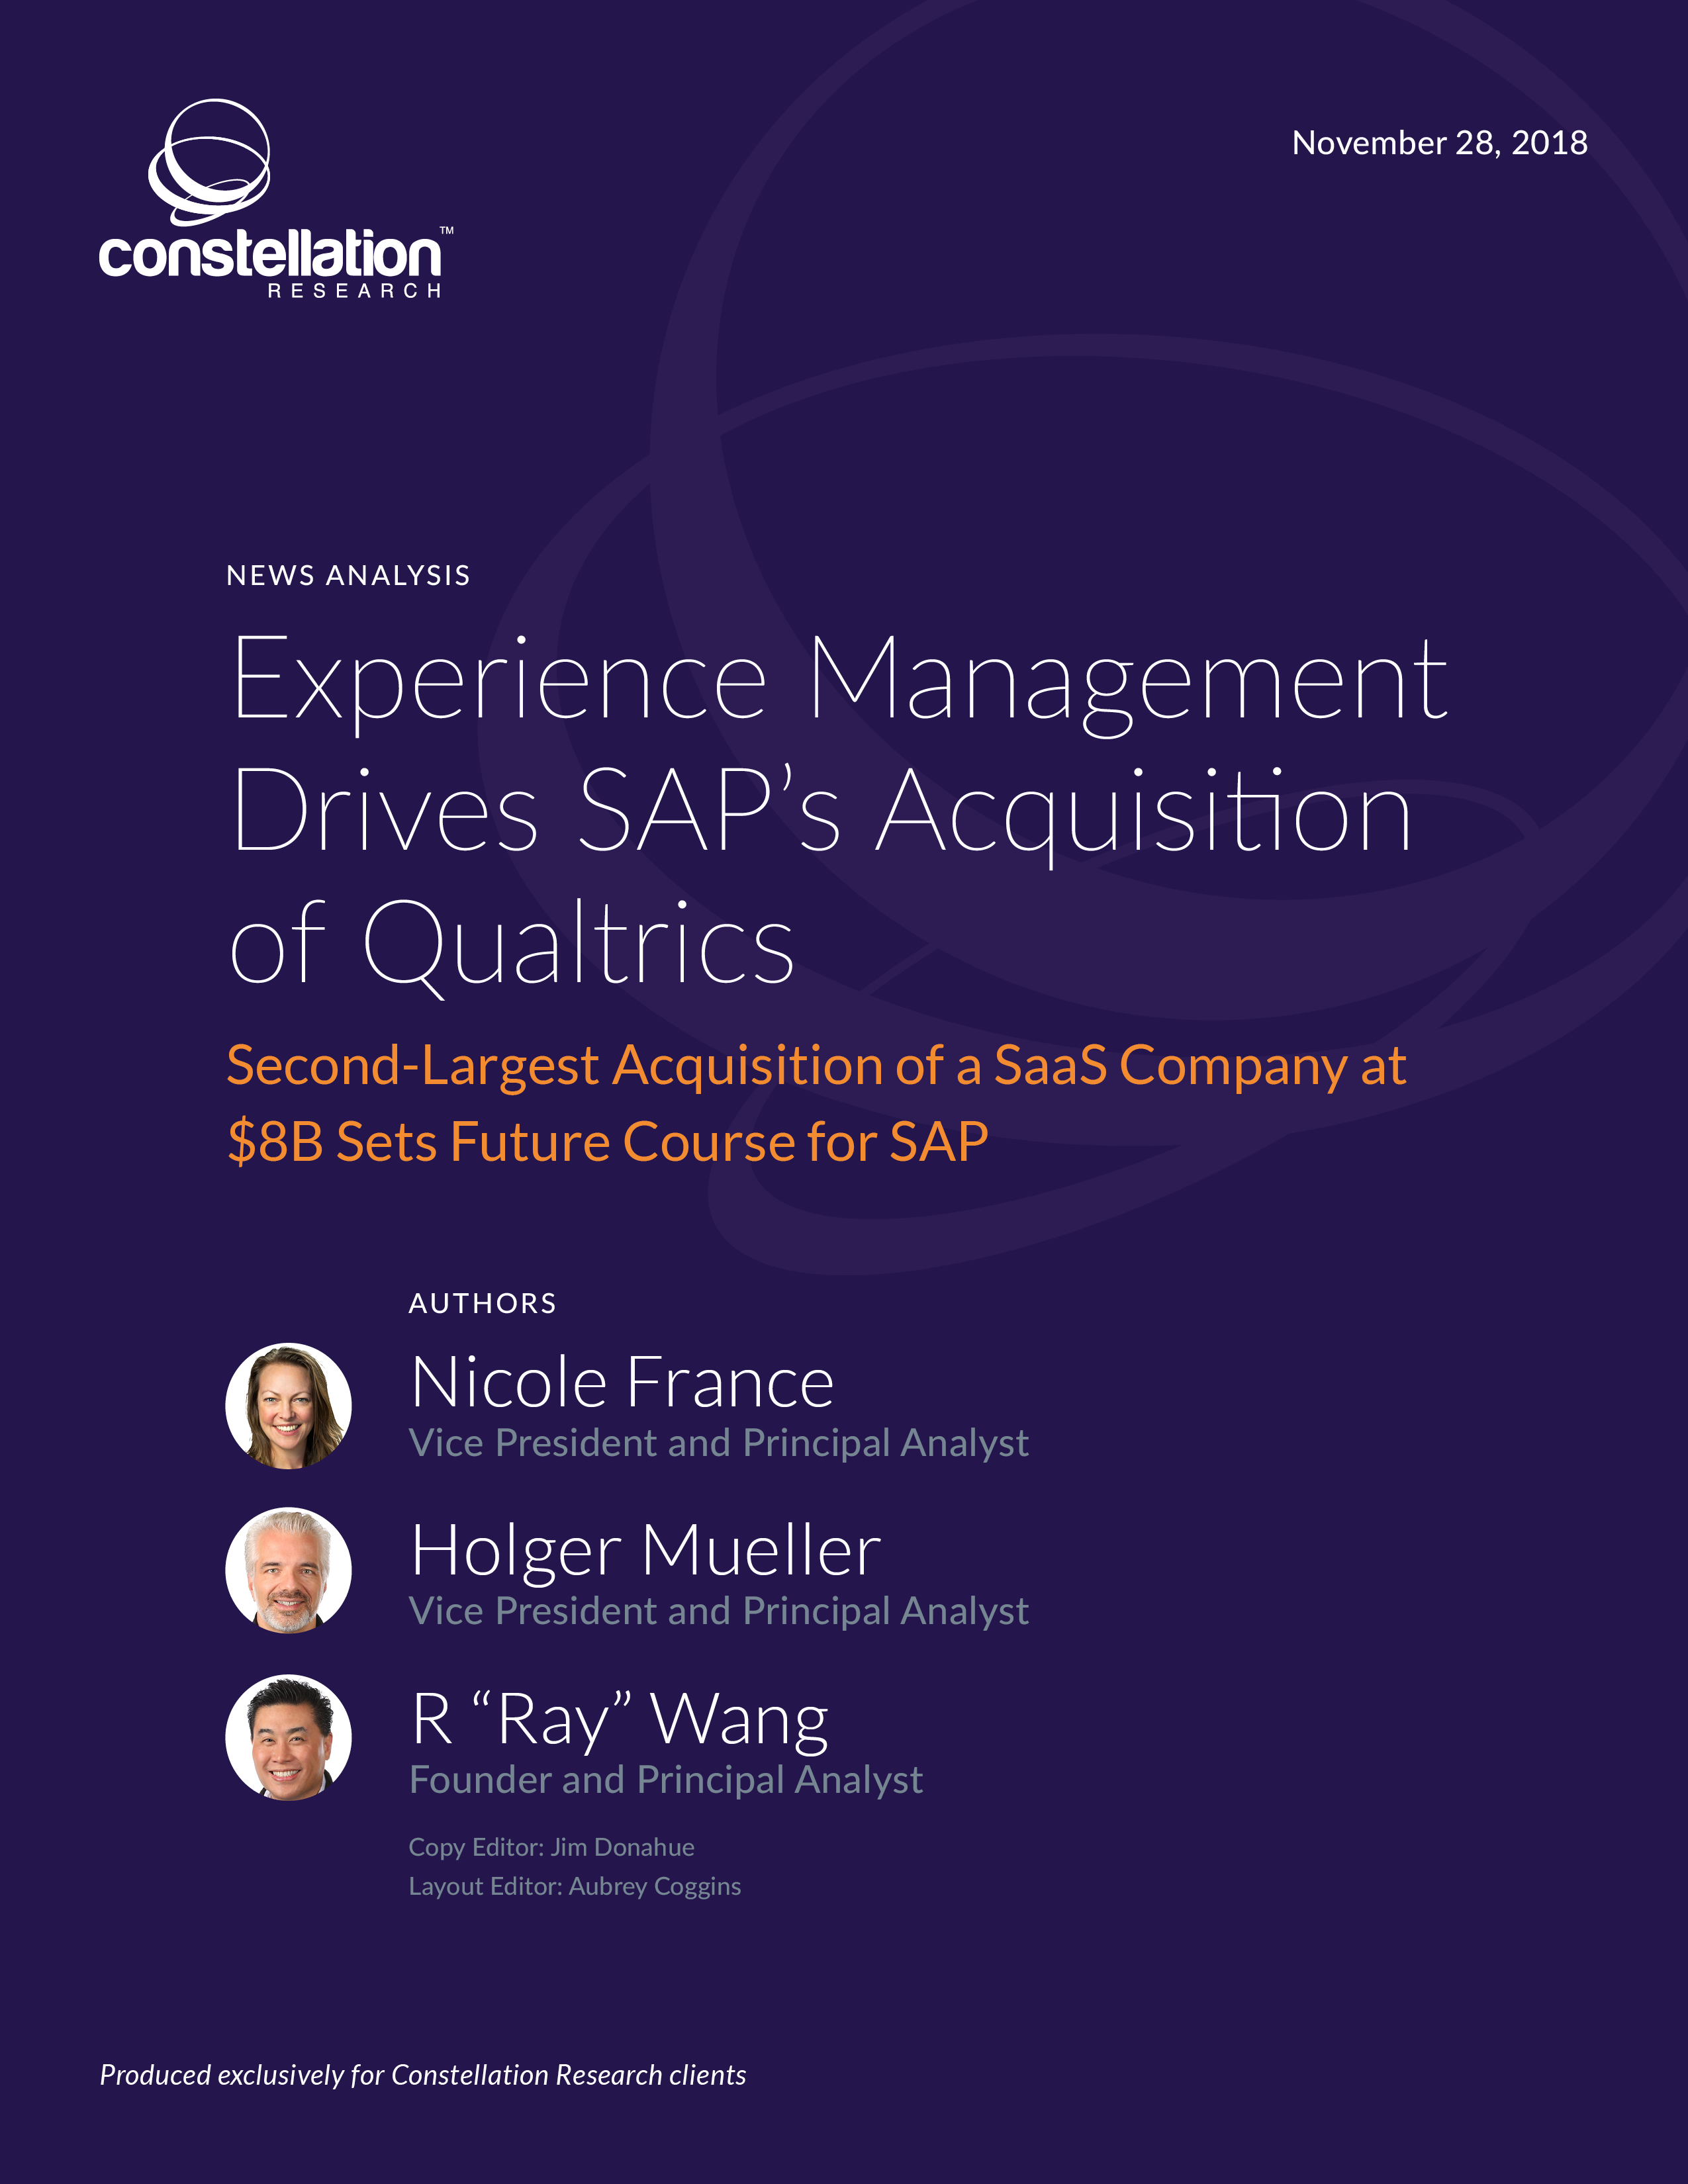 Experience Management Drives SAP's Acquisition of Qualtrics